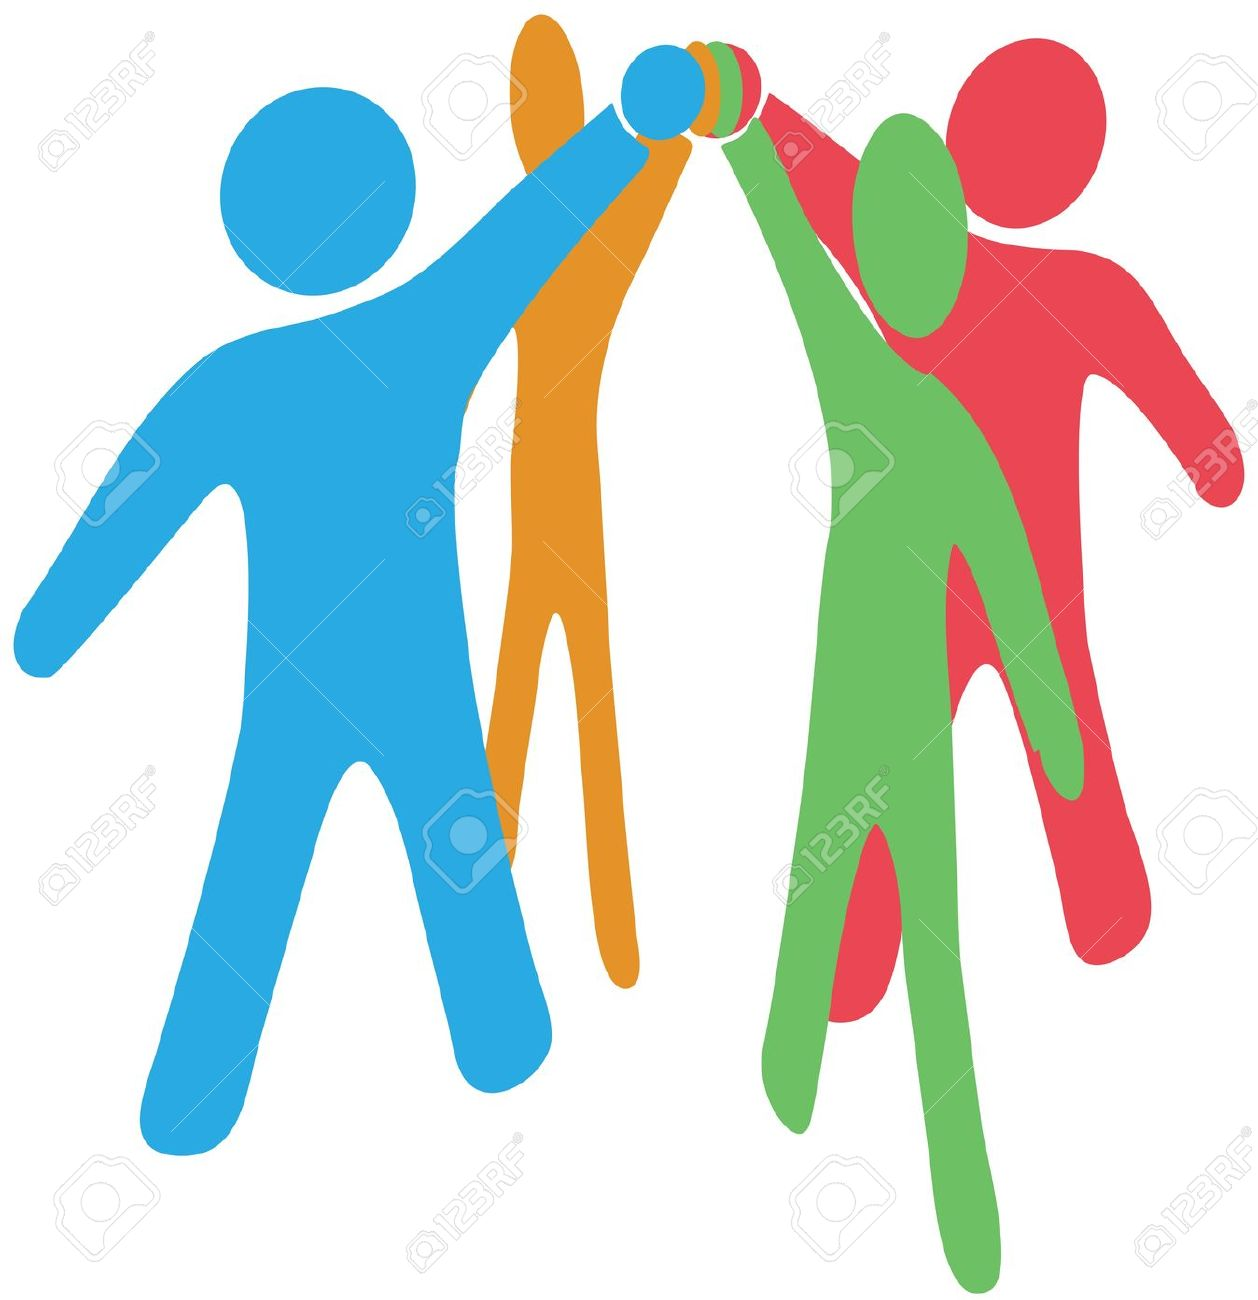 Healing clipart destitute Together Clipart Joined 13 Hands